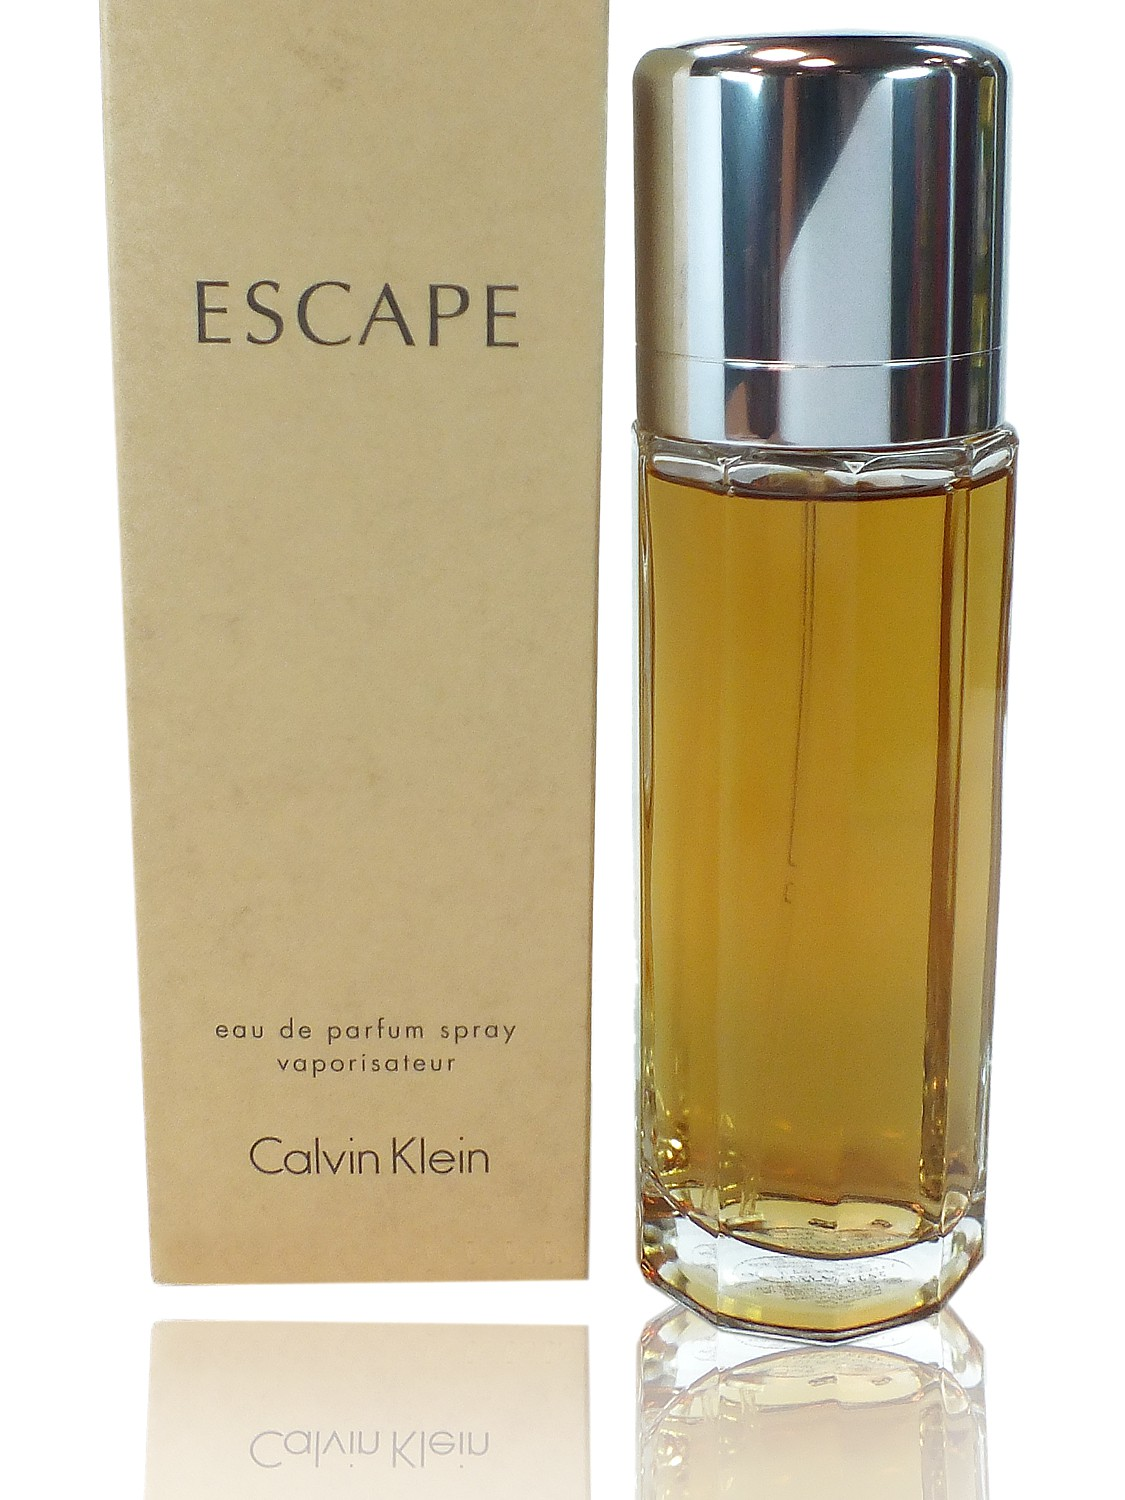 calvin klein ck escape 100 ml eau de parfum spray parf m damen eau de parfum. Black Bedroom Furniture Sets. Home Design Ideas